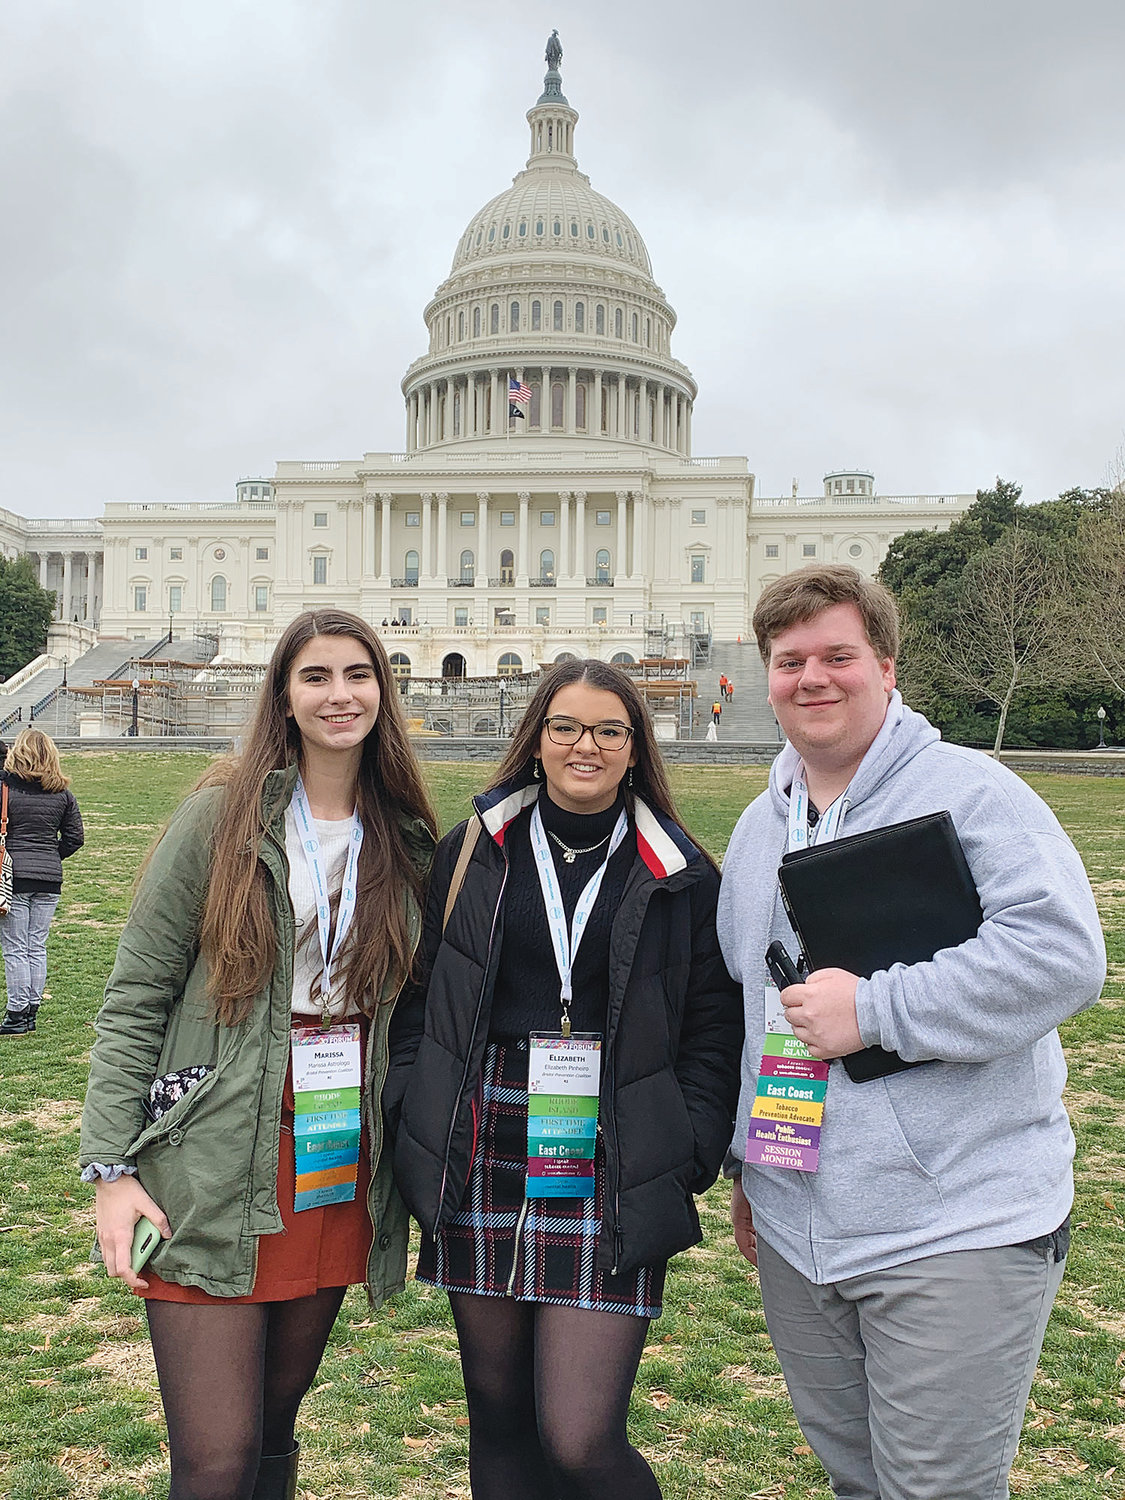 Marissa Astrologo, Ellie Pinheiro and Sean Palumbo (left to right) took a trip to the U.S. Capitol, met with Rhode Island Congressional leaders, and came back energized from the experience.